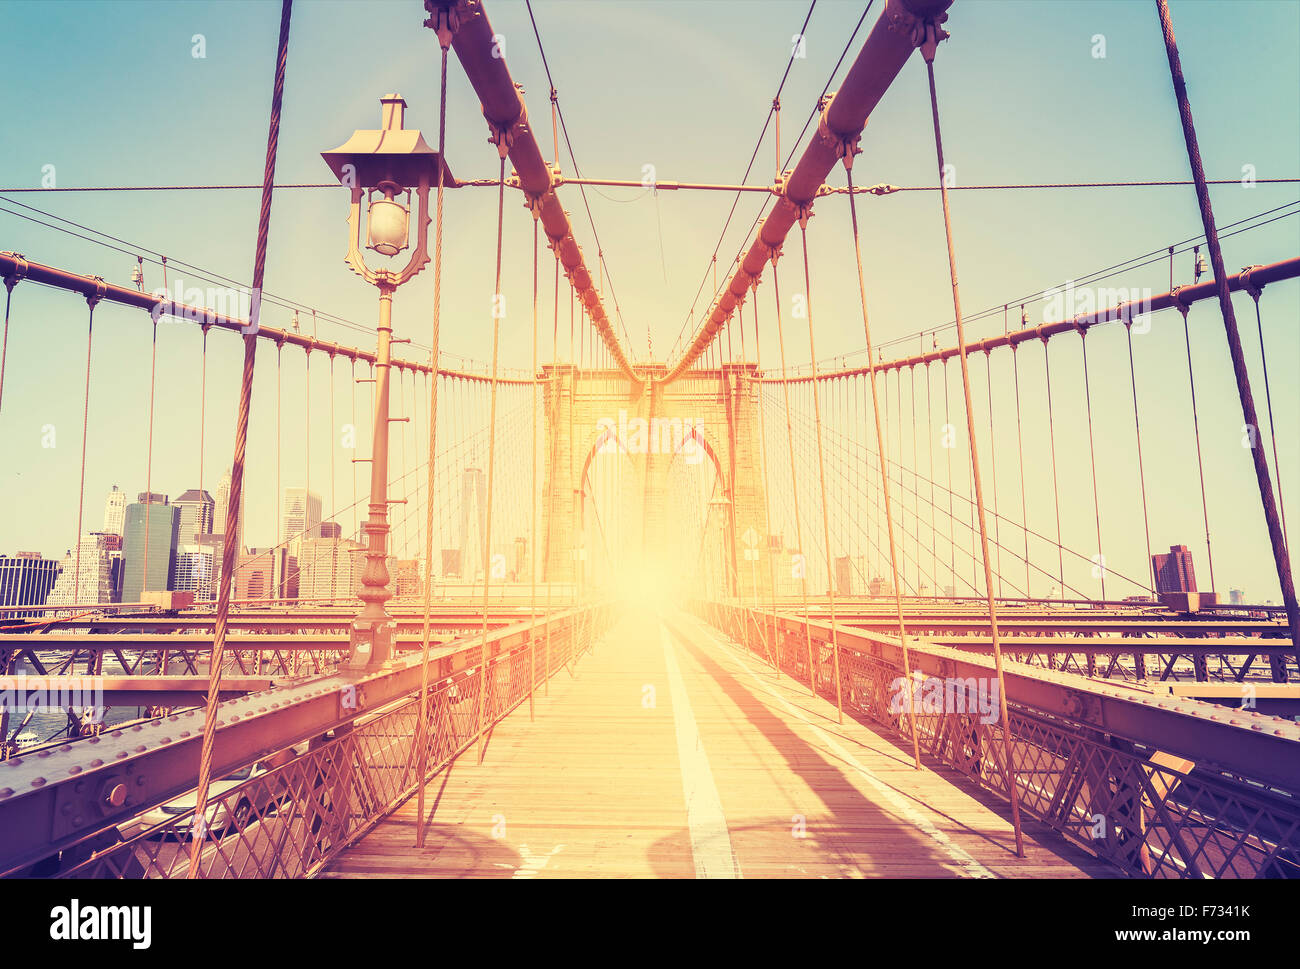 Vintage stylized picture of the Brooklyn Bridge in New York City, USA. Stock Photo